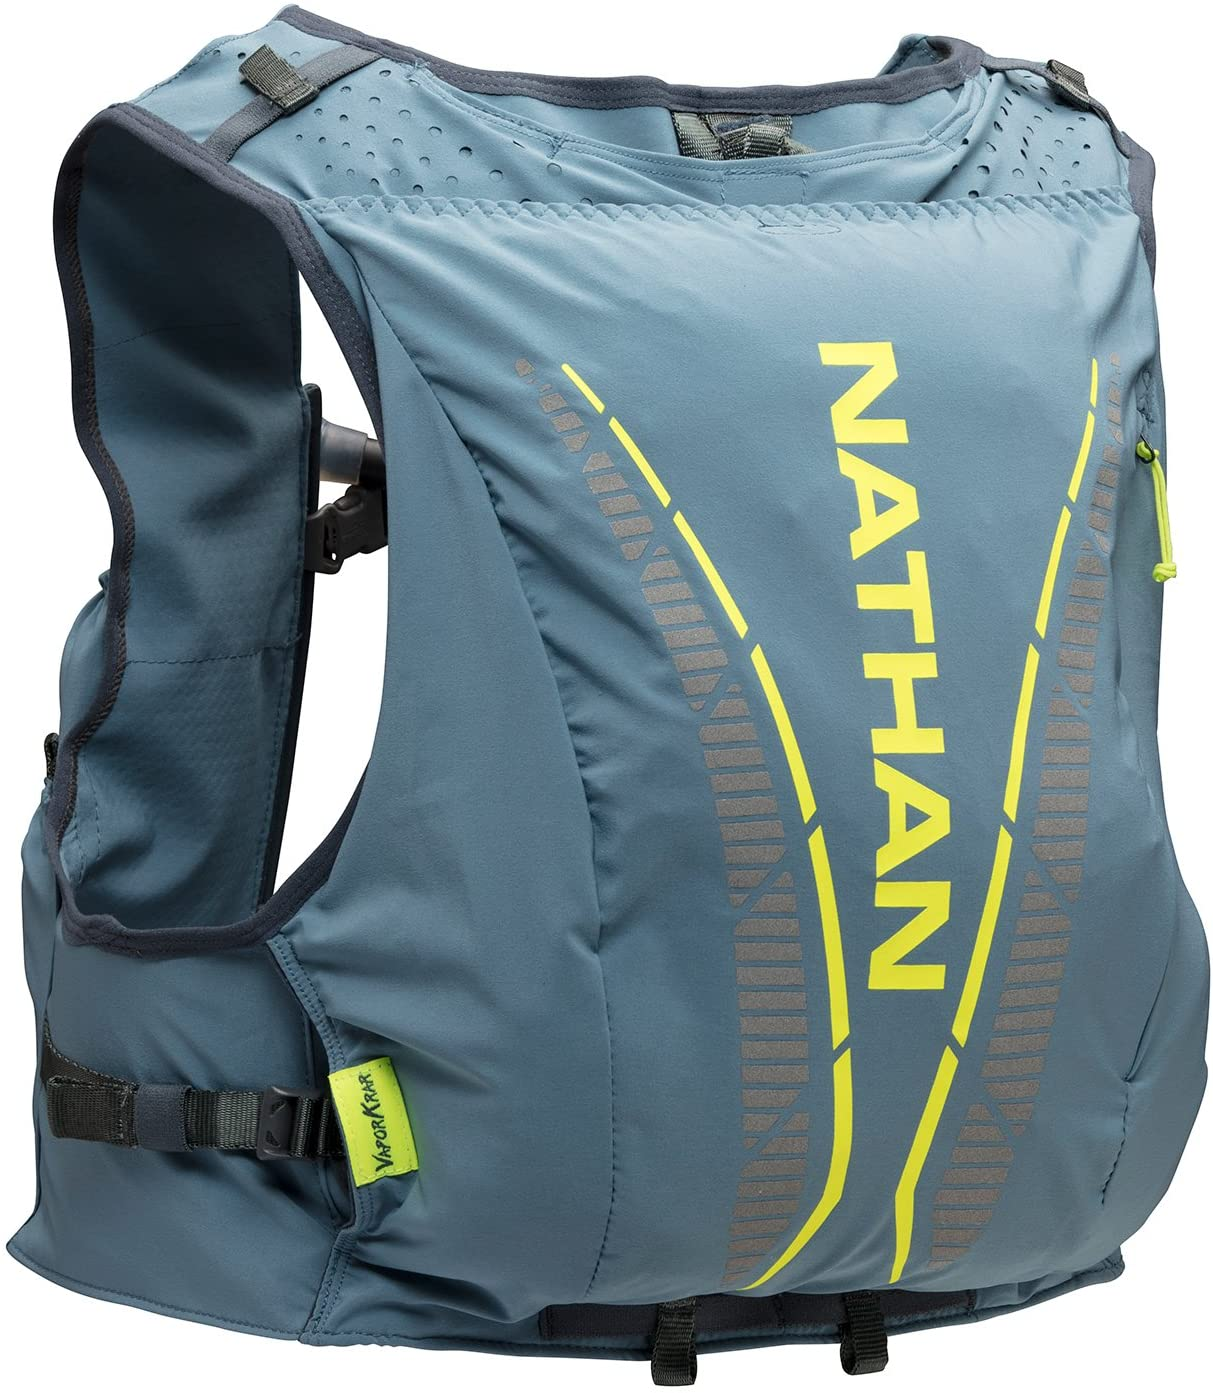 Nathan Vaporkrar Hydration Pack, Running Vest with 1.8L Hydration Bladder Reservoir, Men's